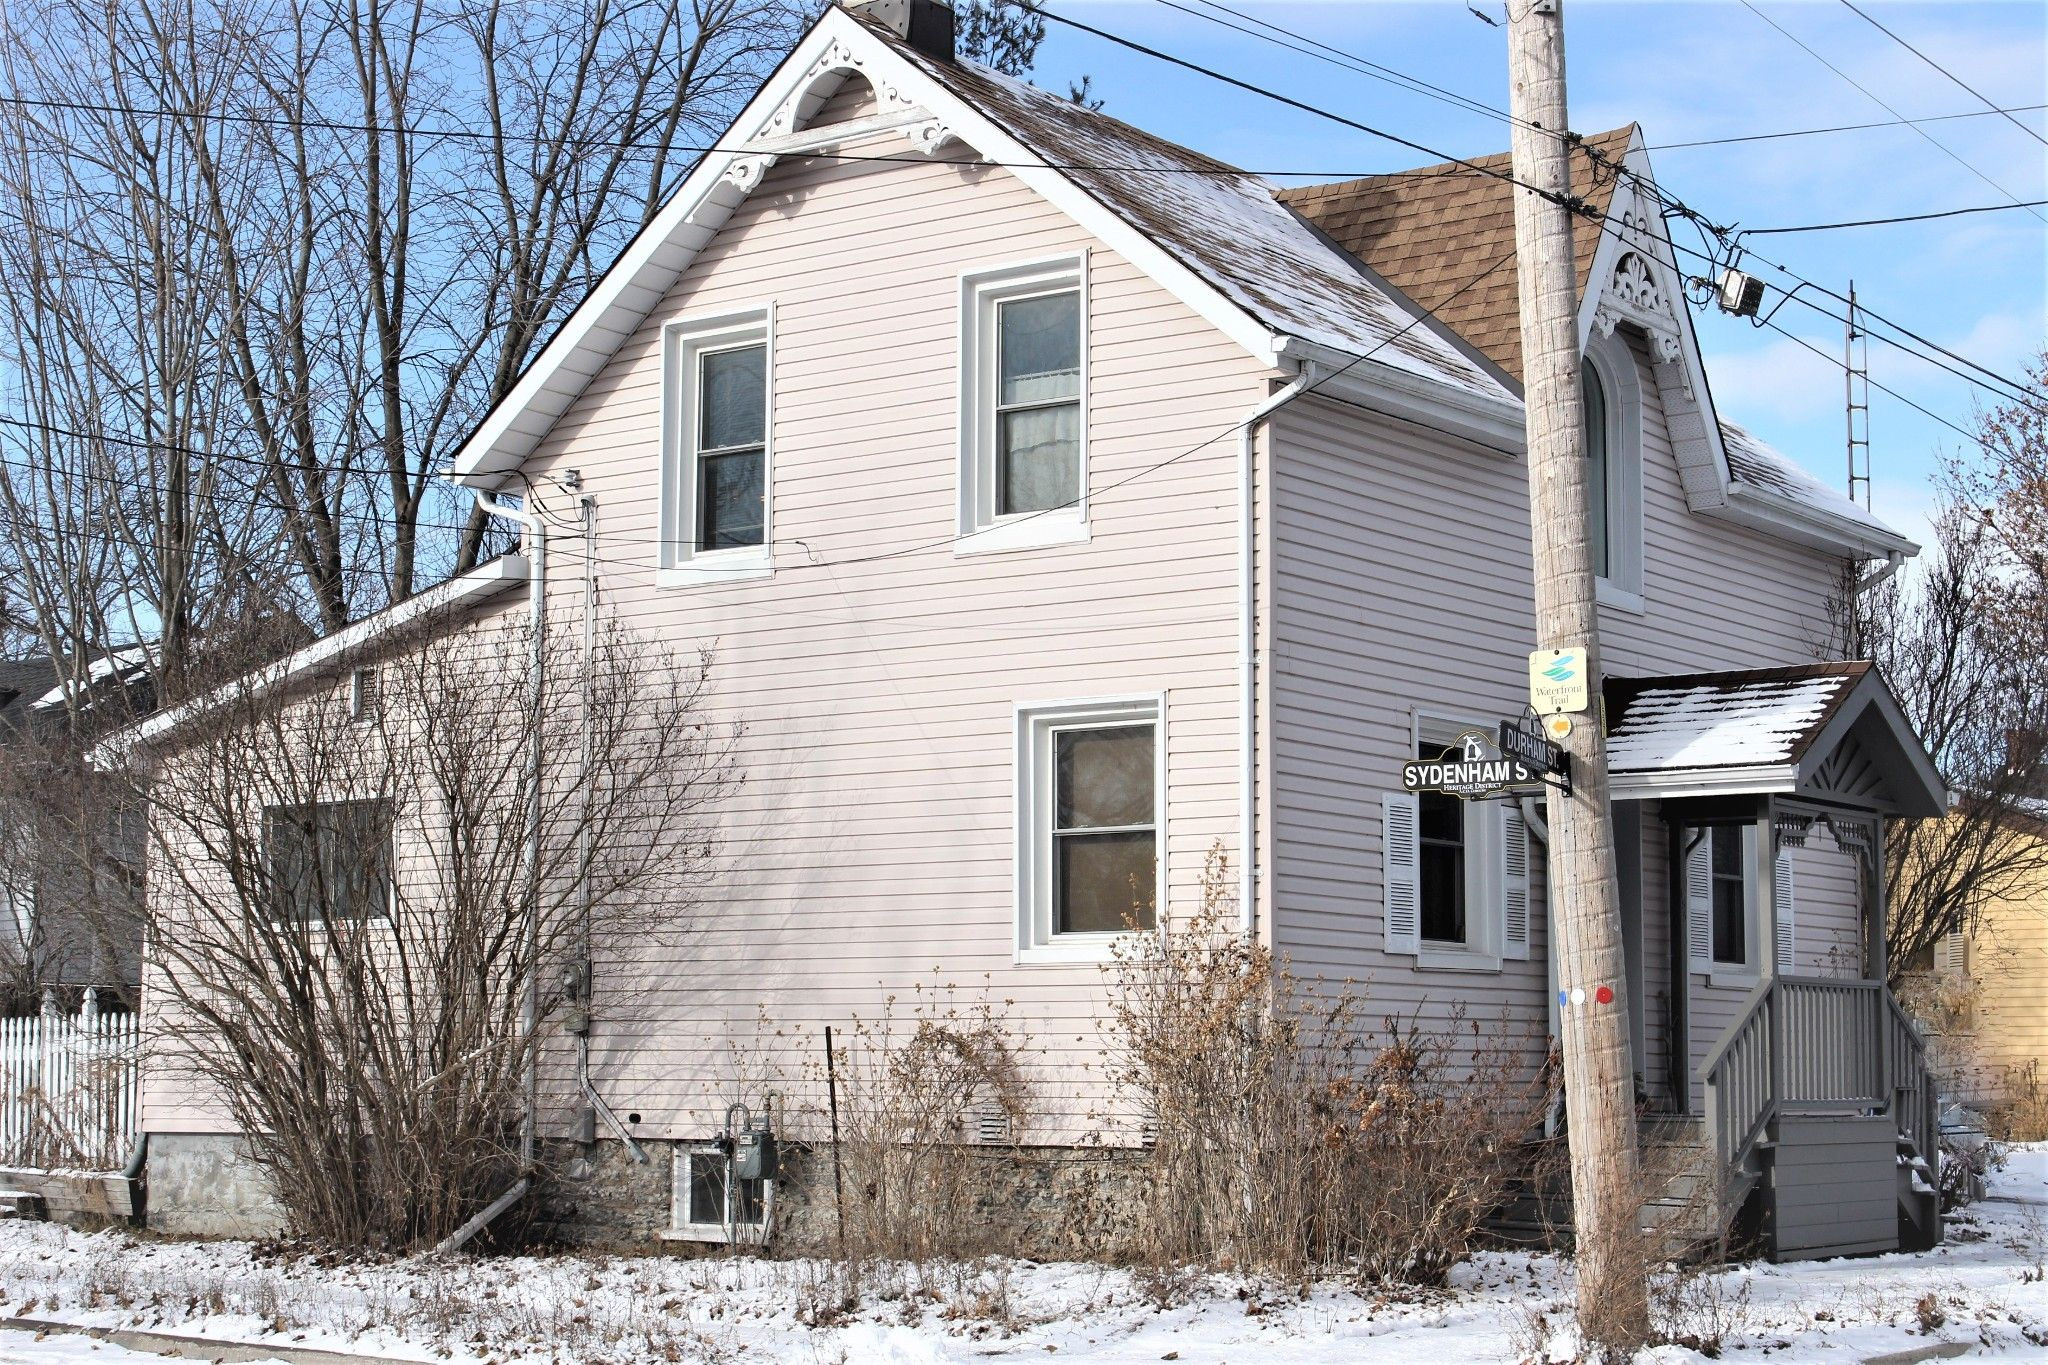 Main Photo: 155 Durham Street in Cobourg: House for sale : MLS®# 238065